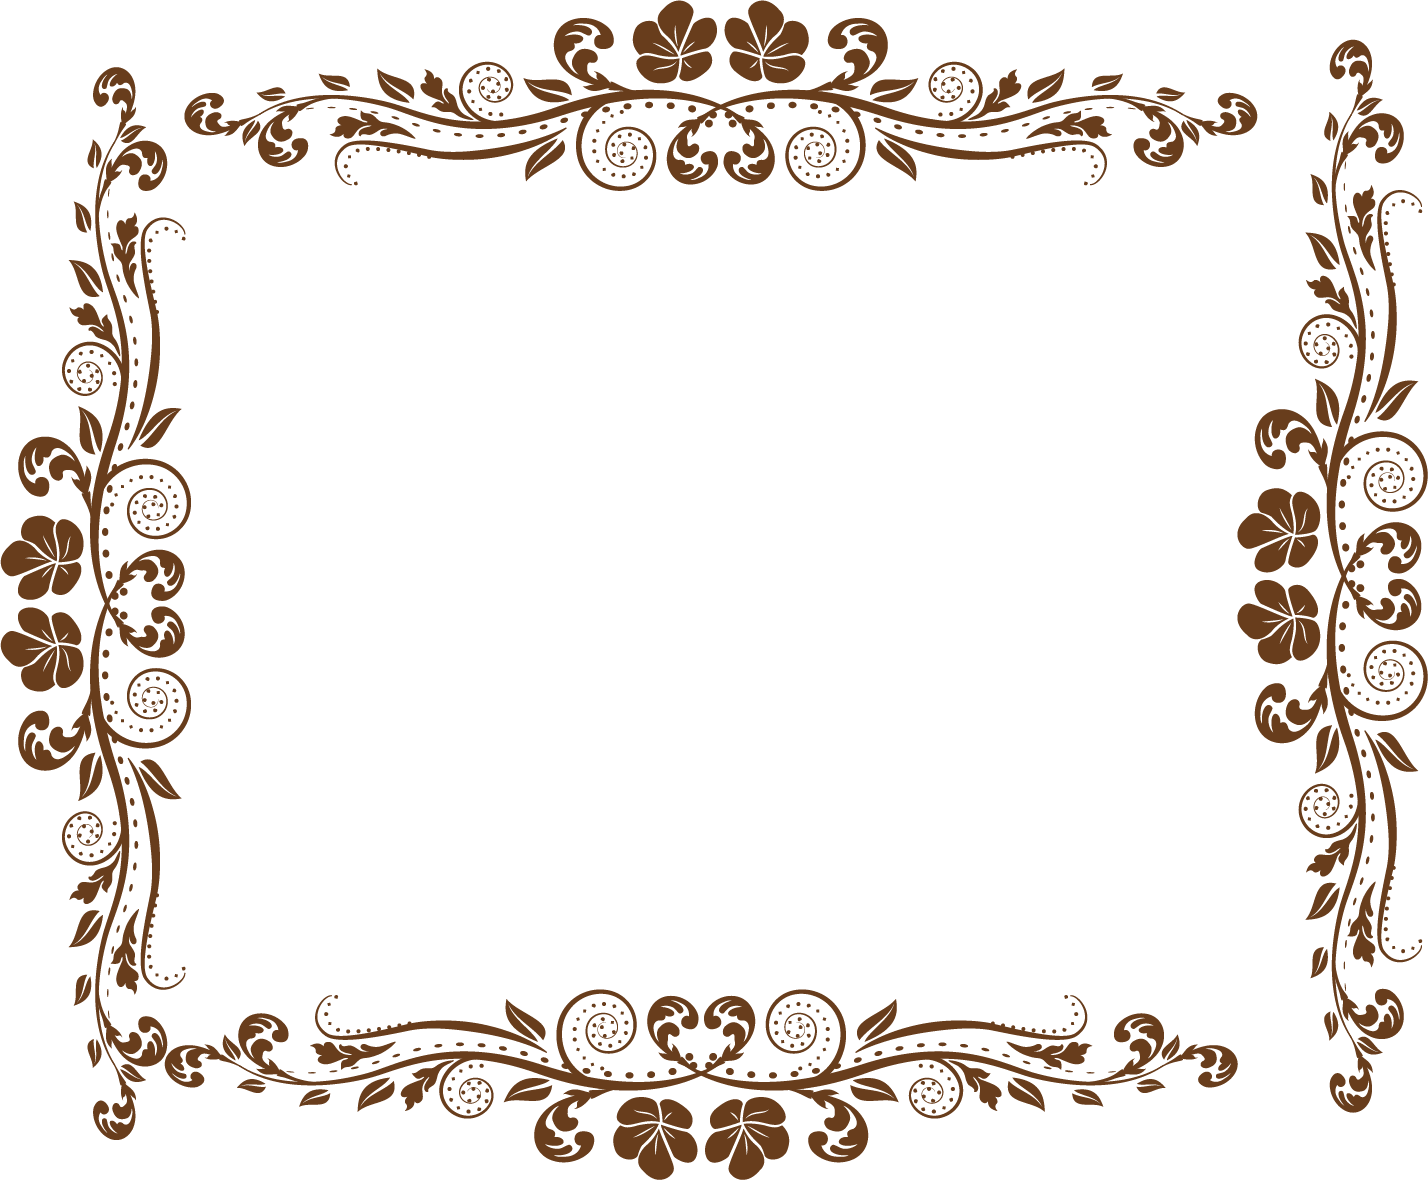 Pattern Border PNG Transparent Picture.